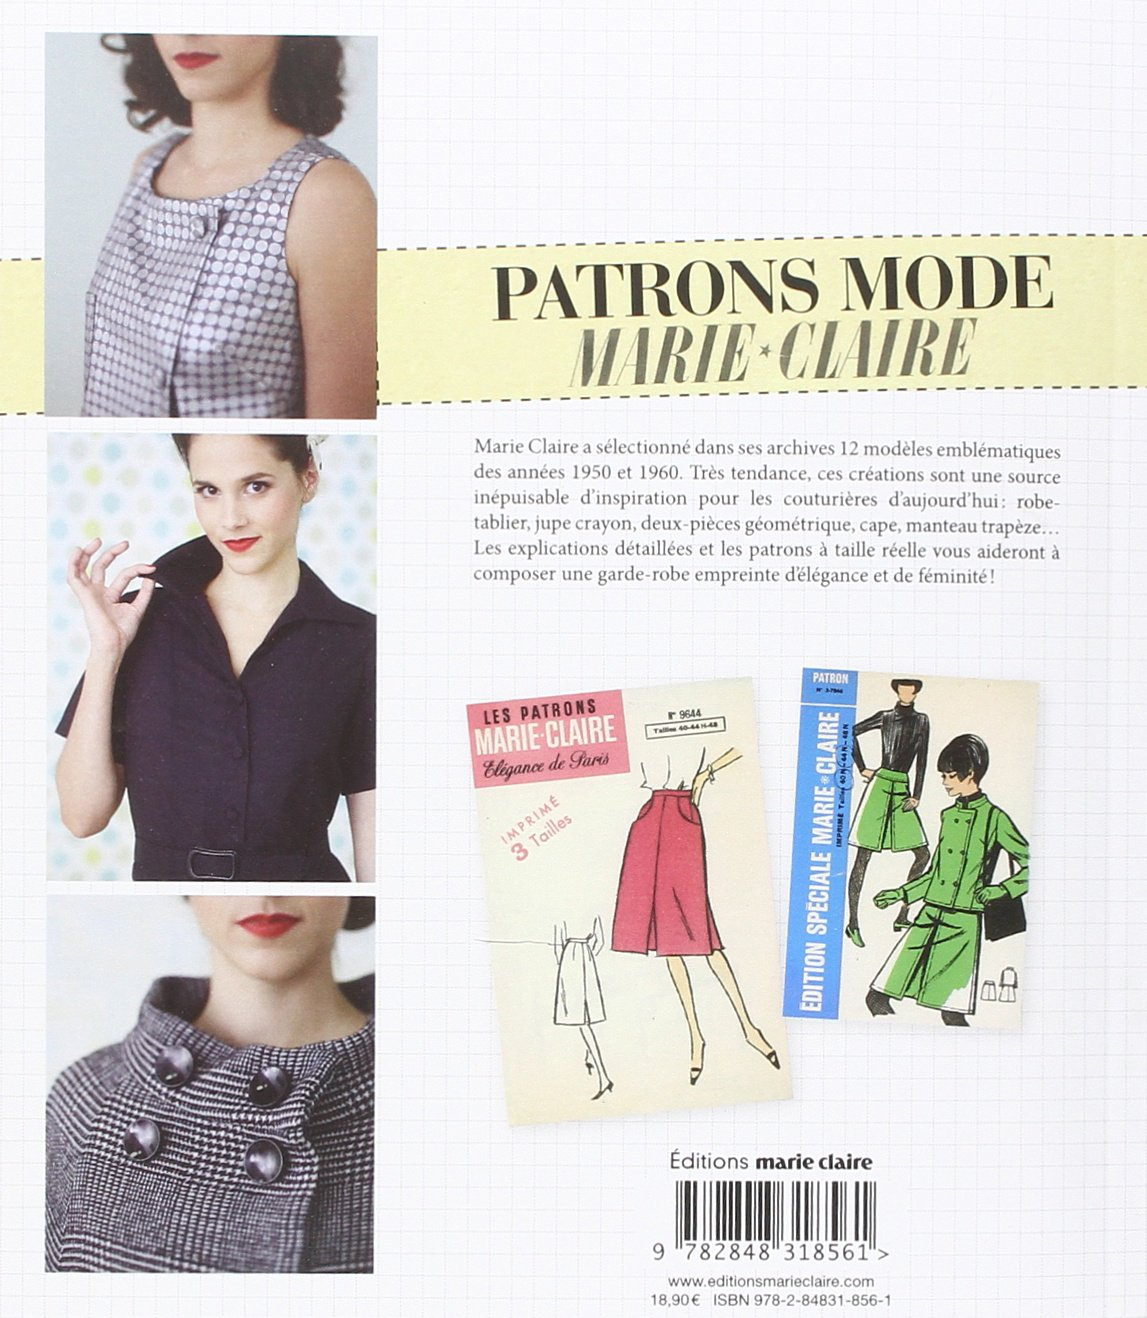 Patron robe chemisier marie claire